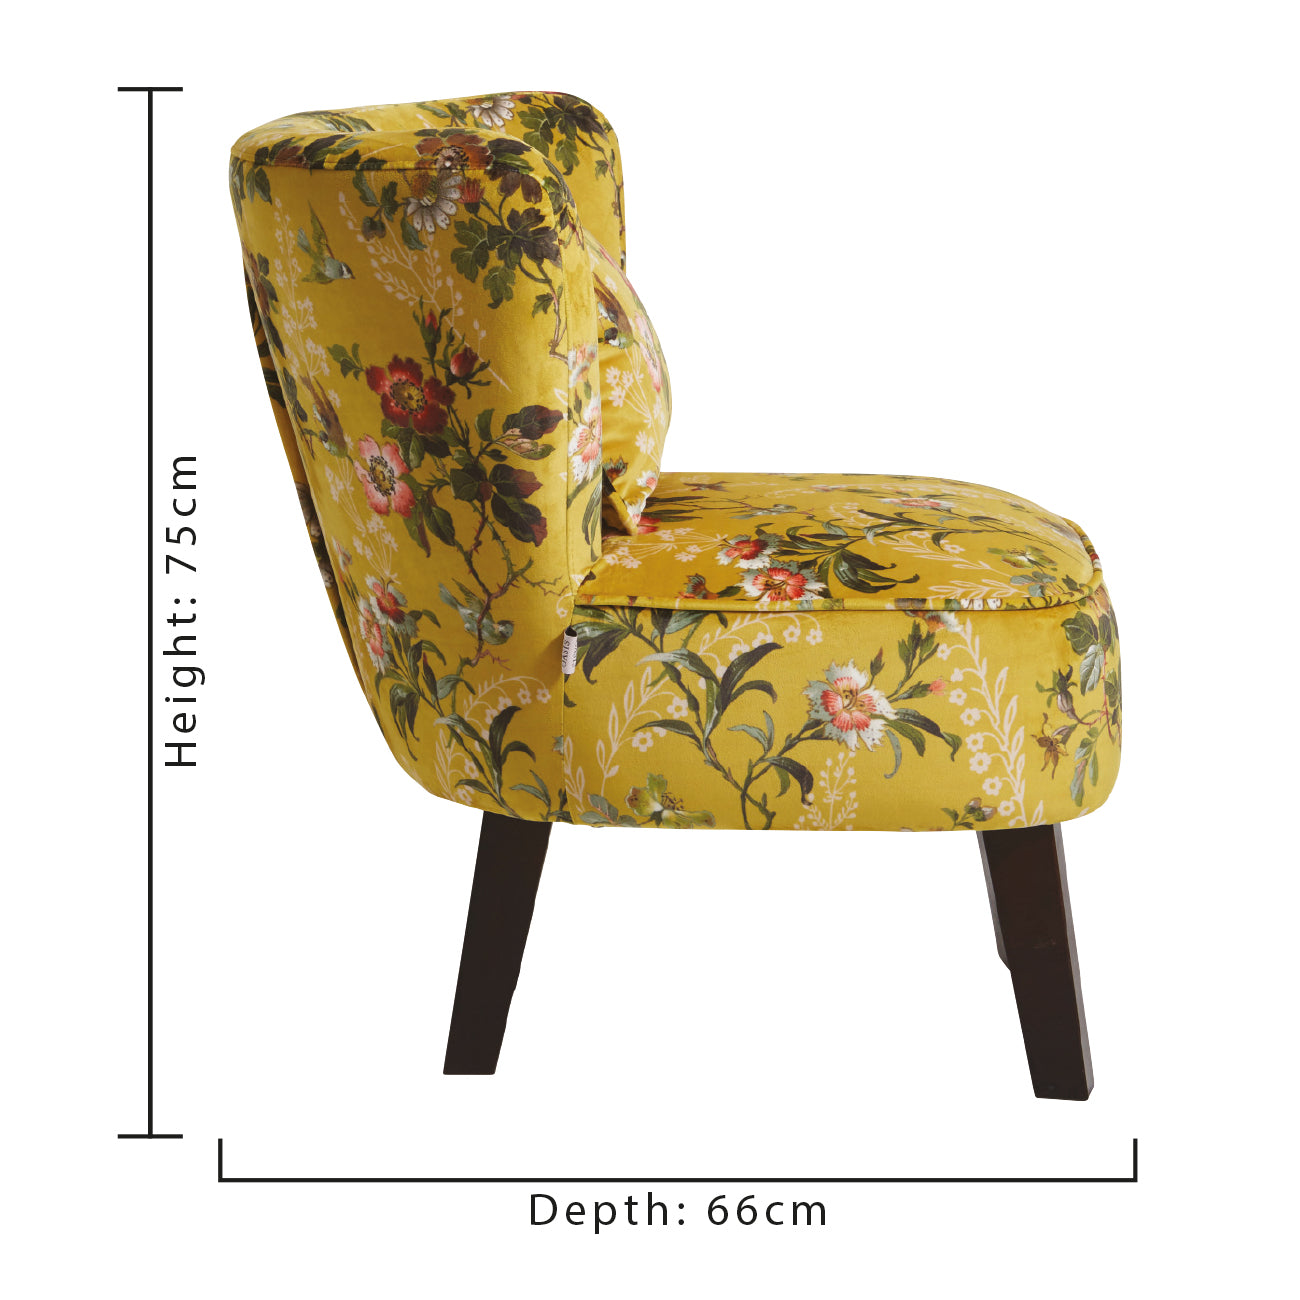 Oasis Monika Leighton Ochre Designer Accent Chair